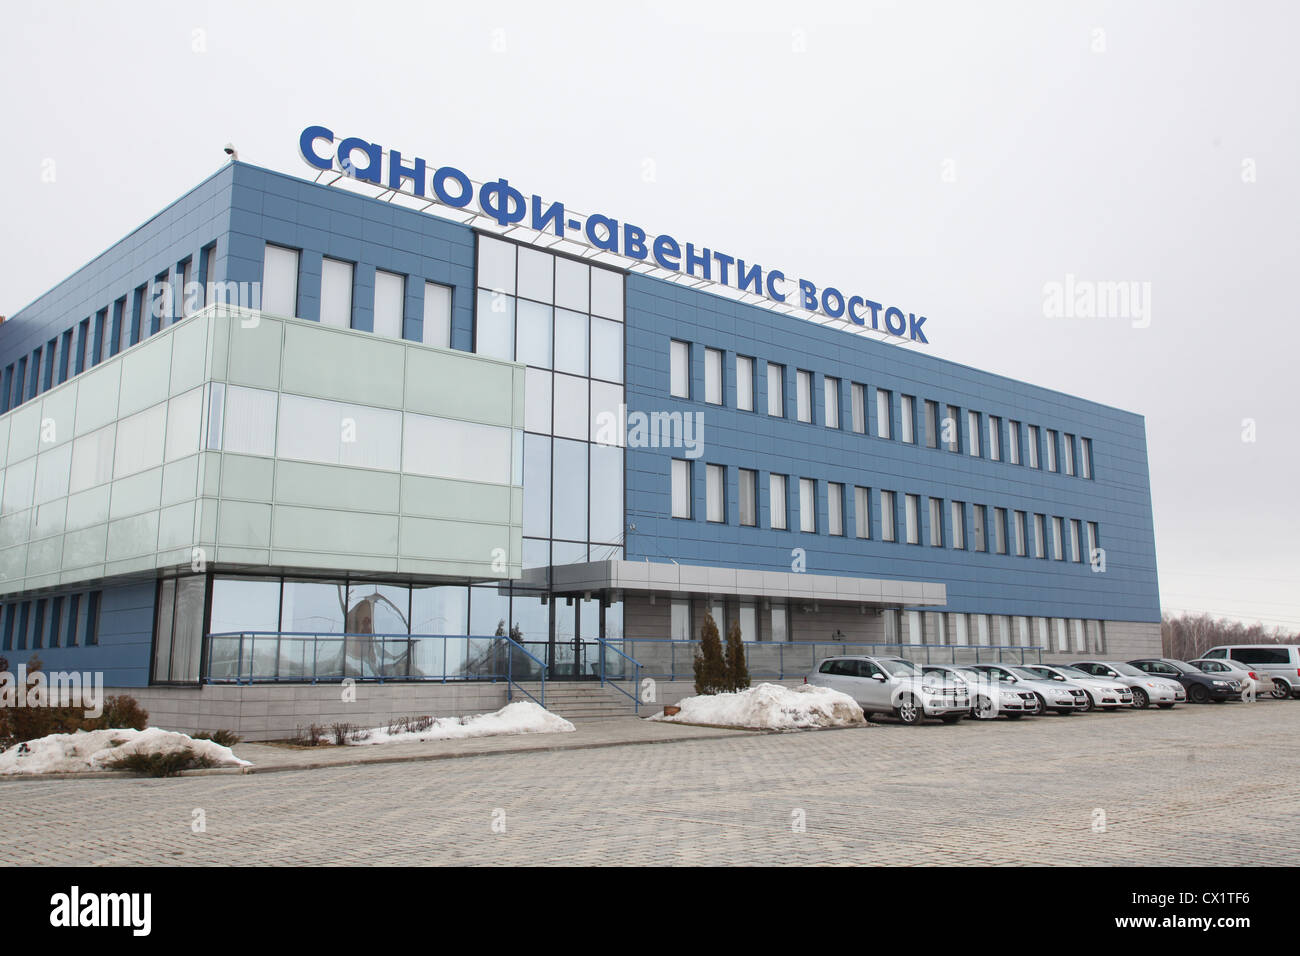 ITAR-TASS: ORYOL REGION, RUSSIA. MAY 24, 2011. Outside view of a ZAO Sanofi Aventis Vostok plant, formerly known - Stock Image